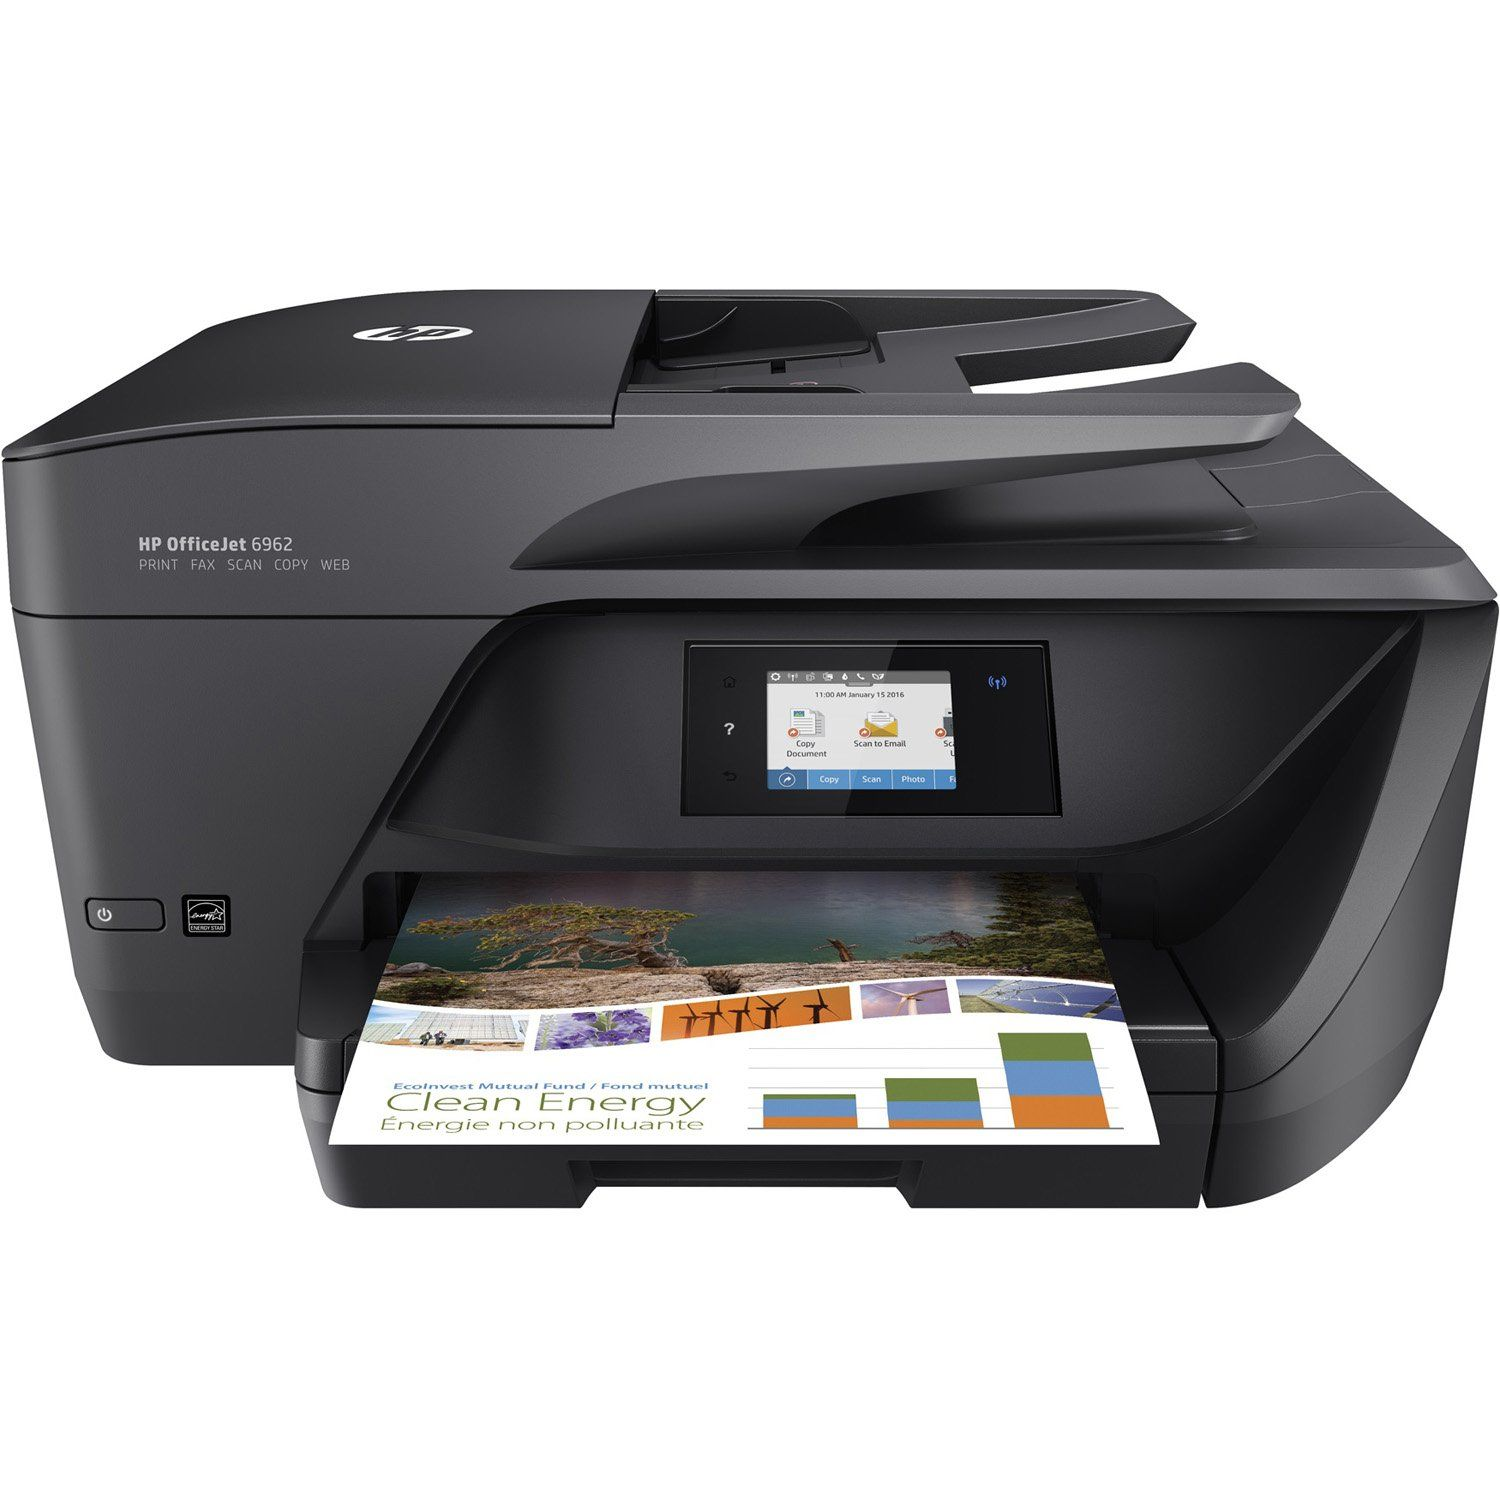 Hp Officejet Pro 6962 All In One Printer Black Hp Officejet Pro